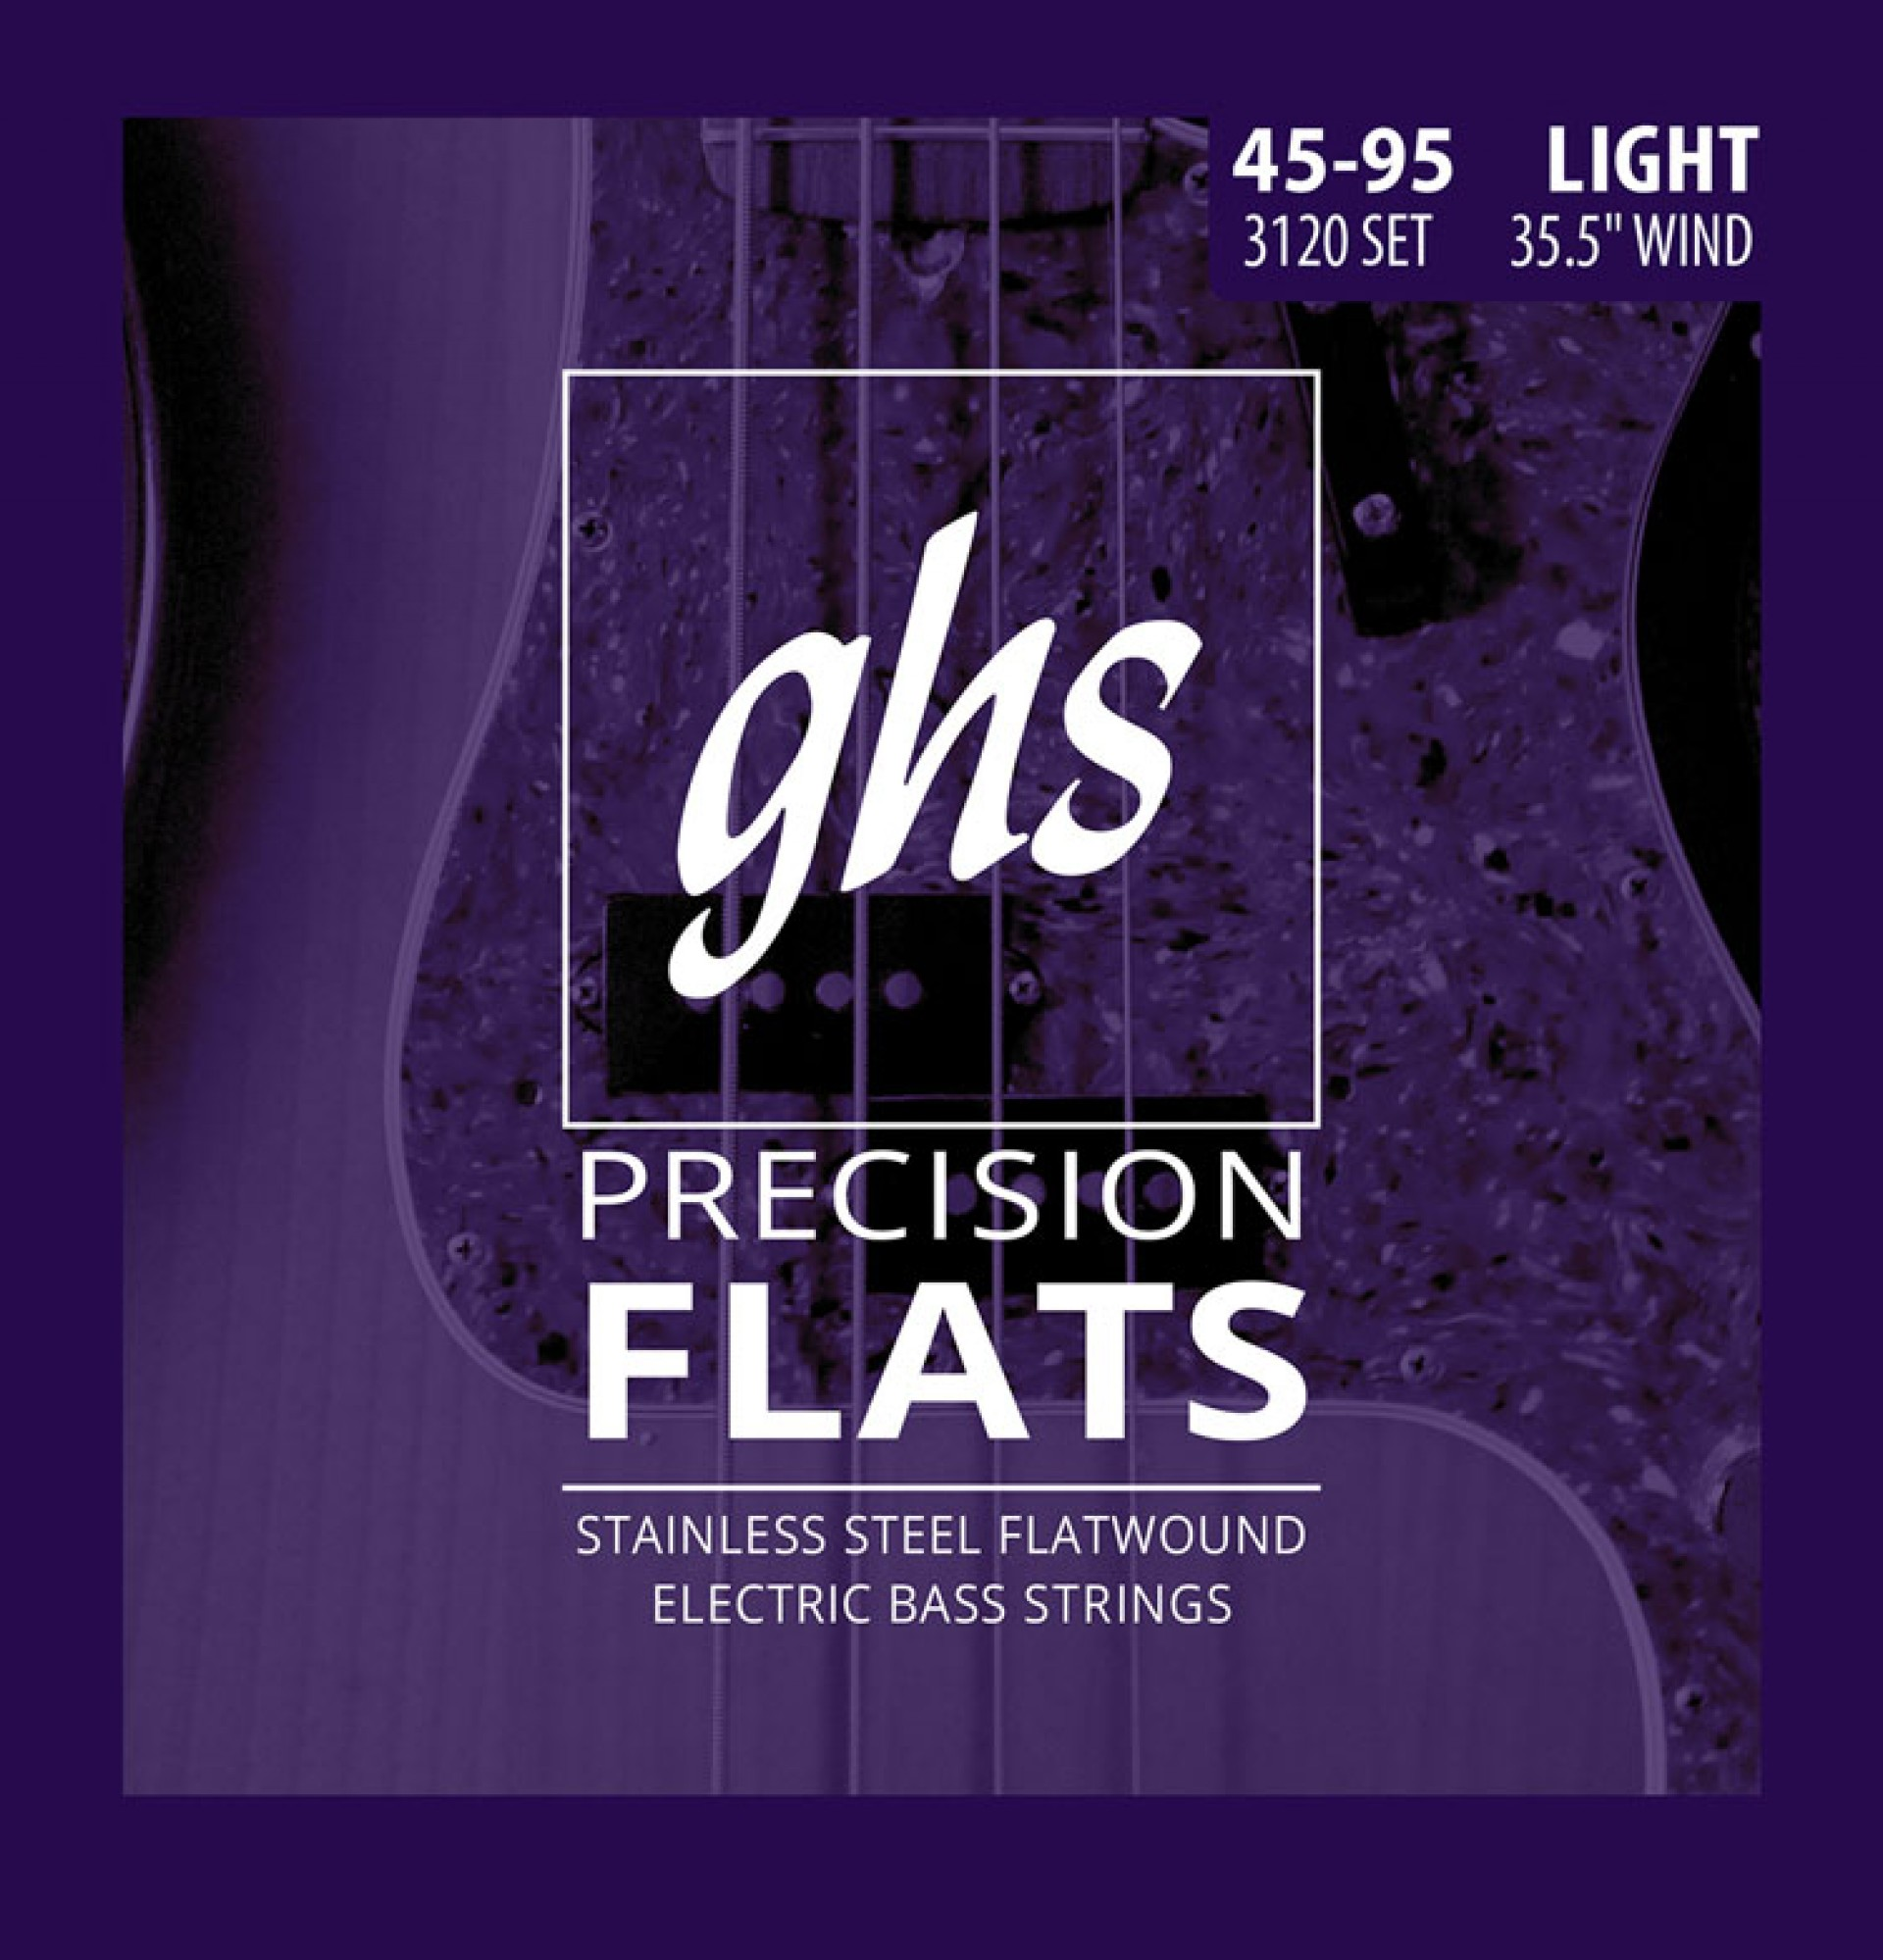 GHS 3120 Precision Flats Flatwound Bass Strings Medium Scale - 4-String 45-095 Light